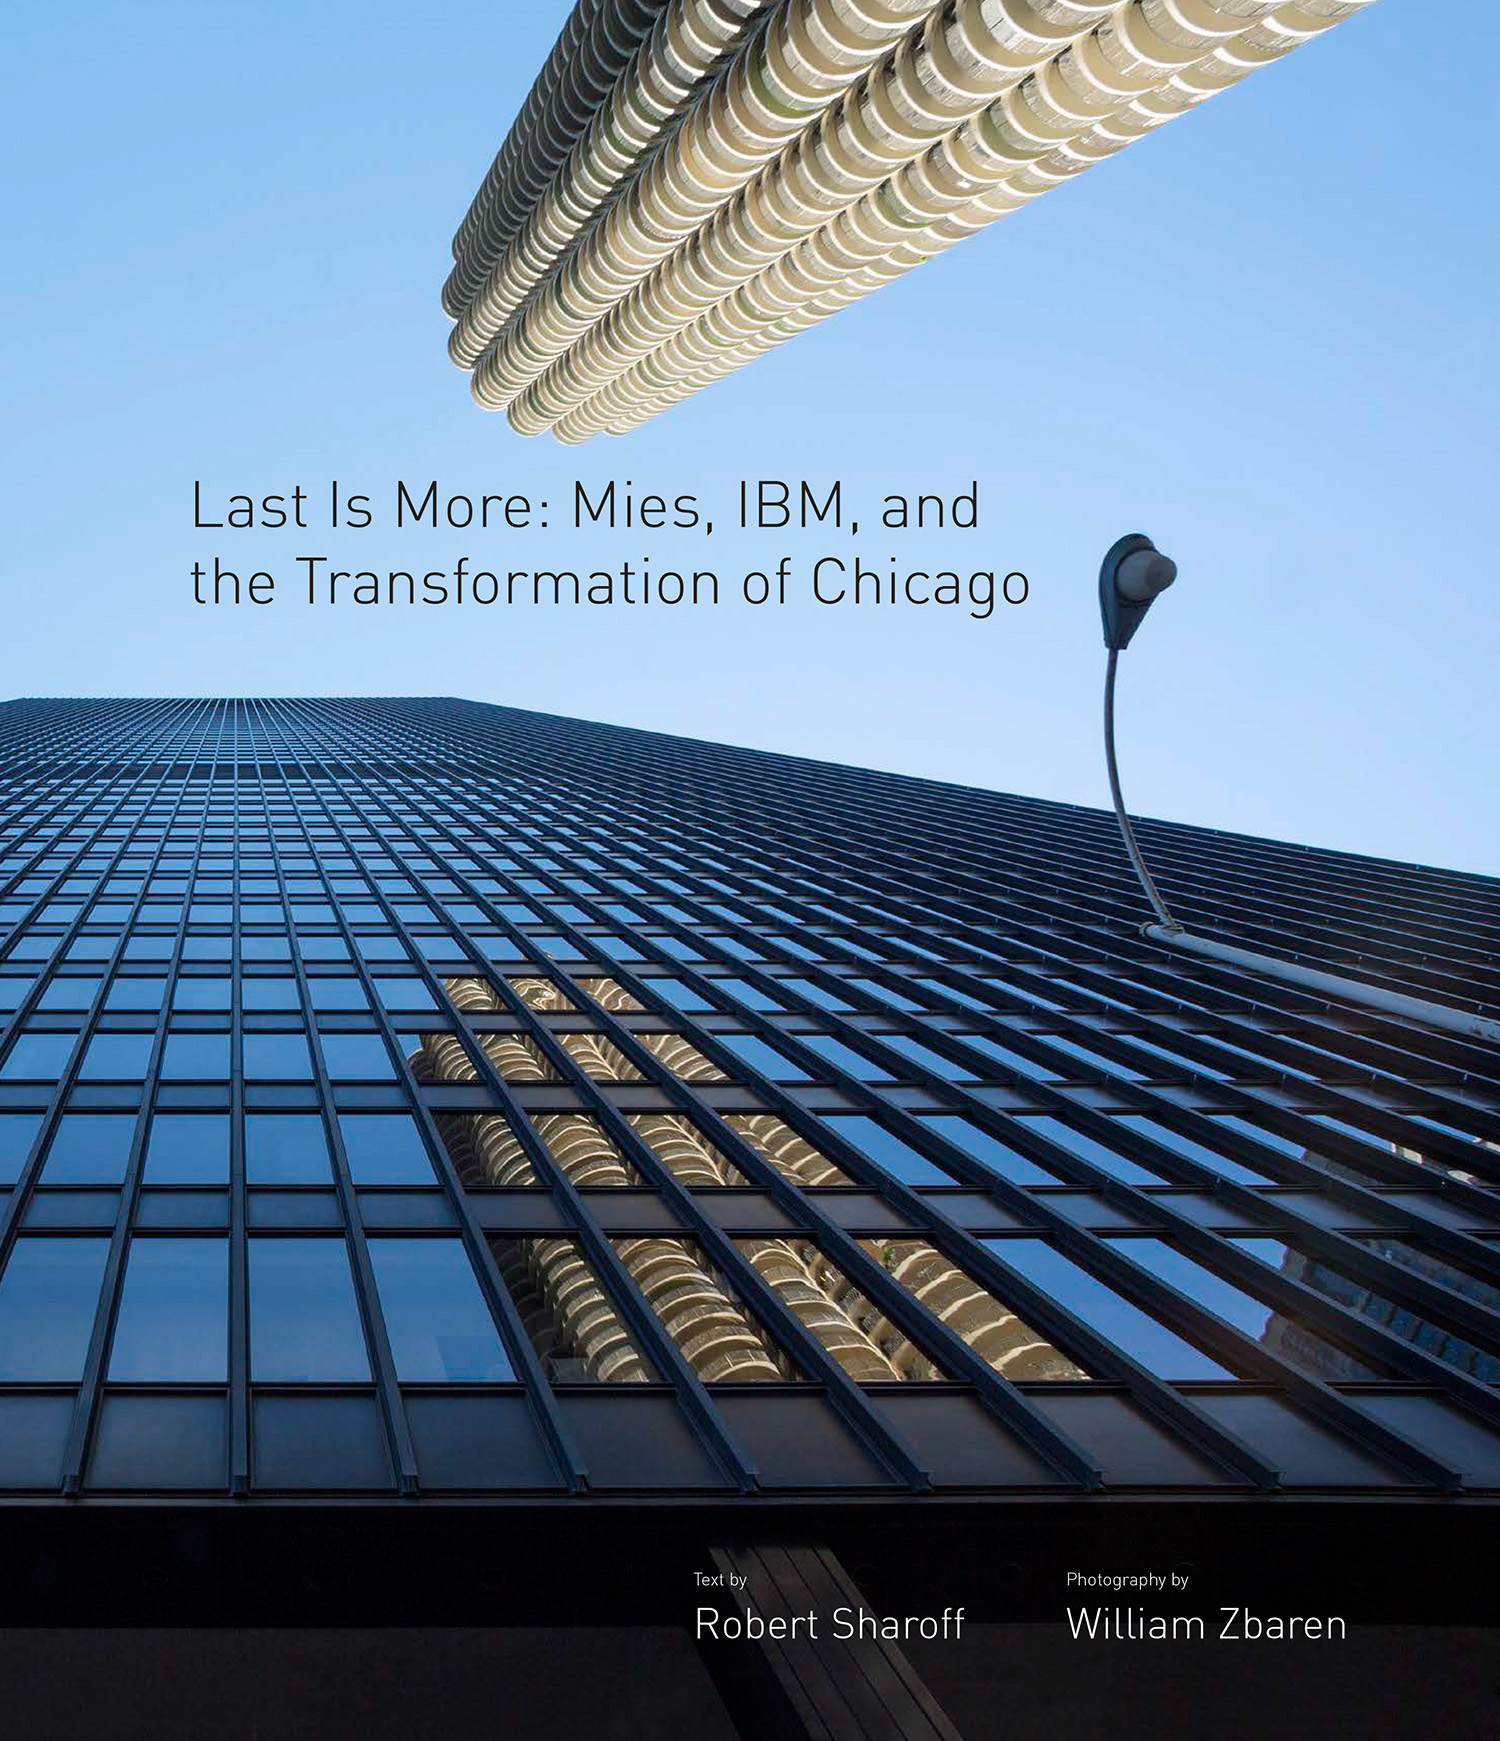 """Last Is More: Mies, IBM and the Transformation of Chicago"" / Photographs by Bill Zbaren / Text by Robert Sharoff / Published by the Langham Hotel Group"